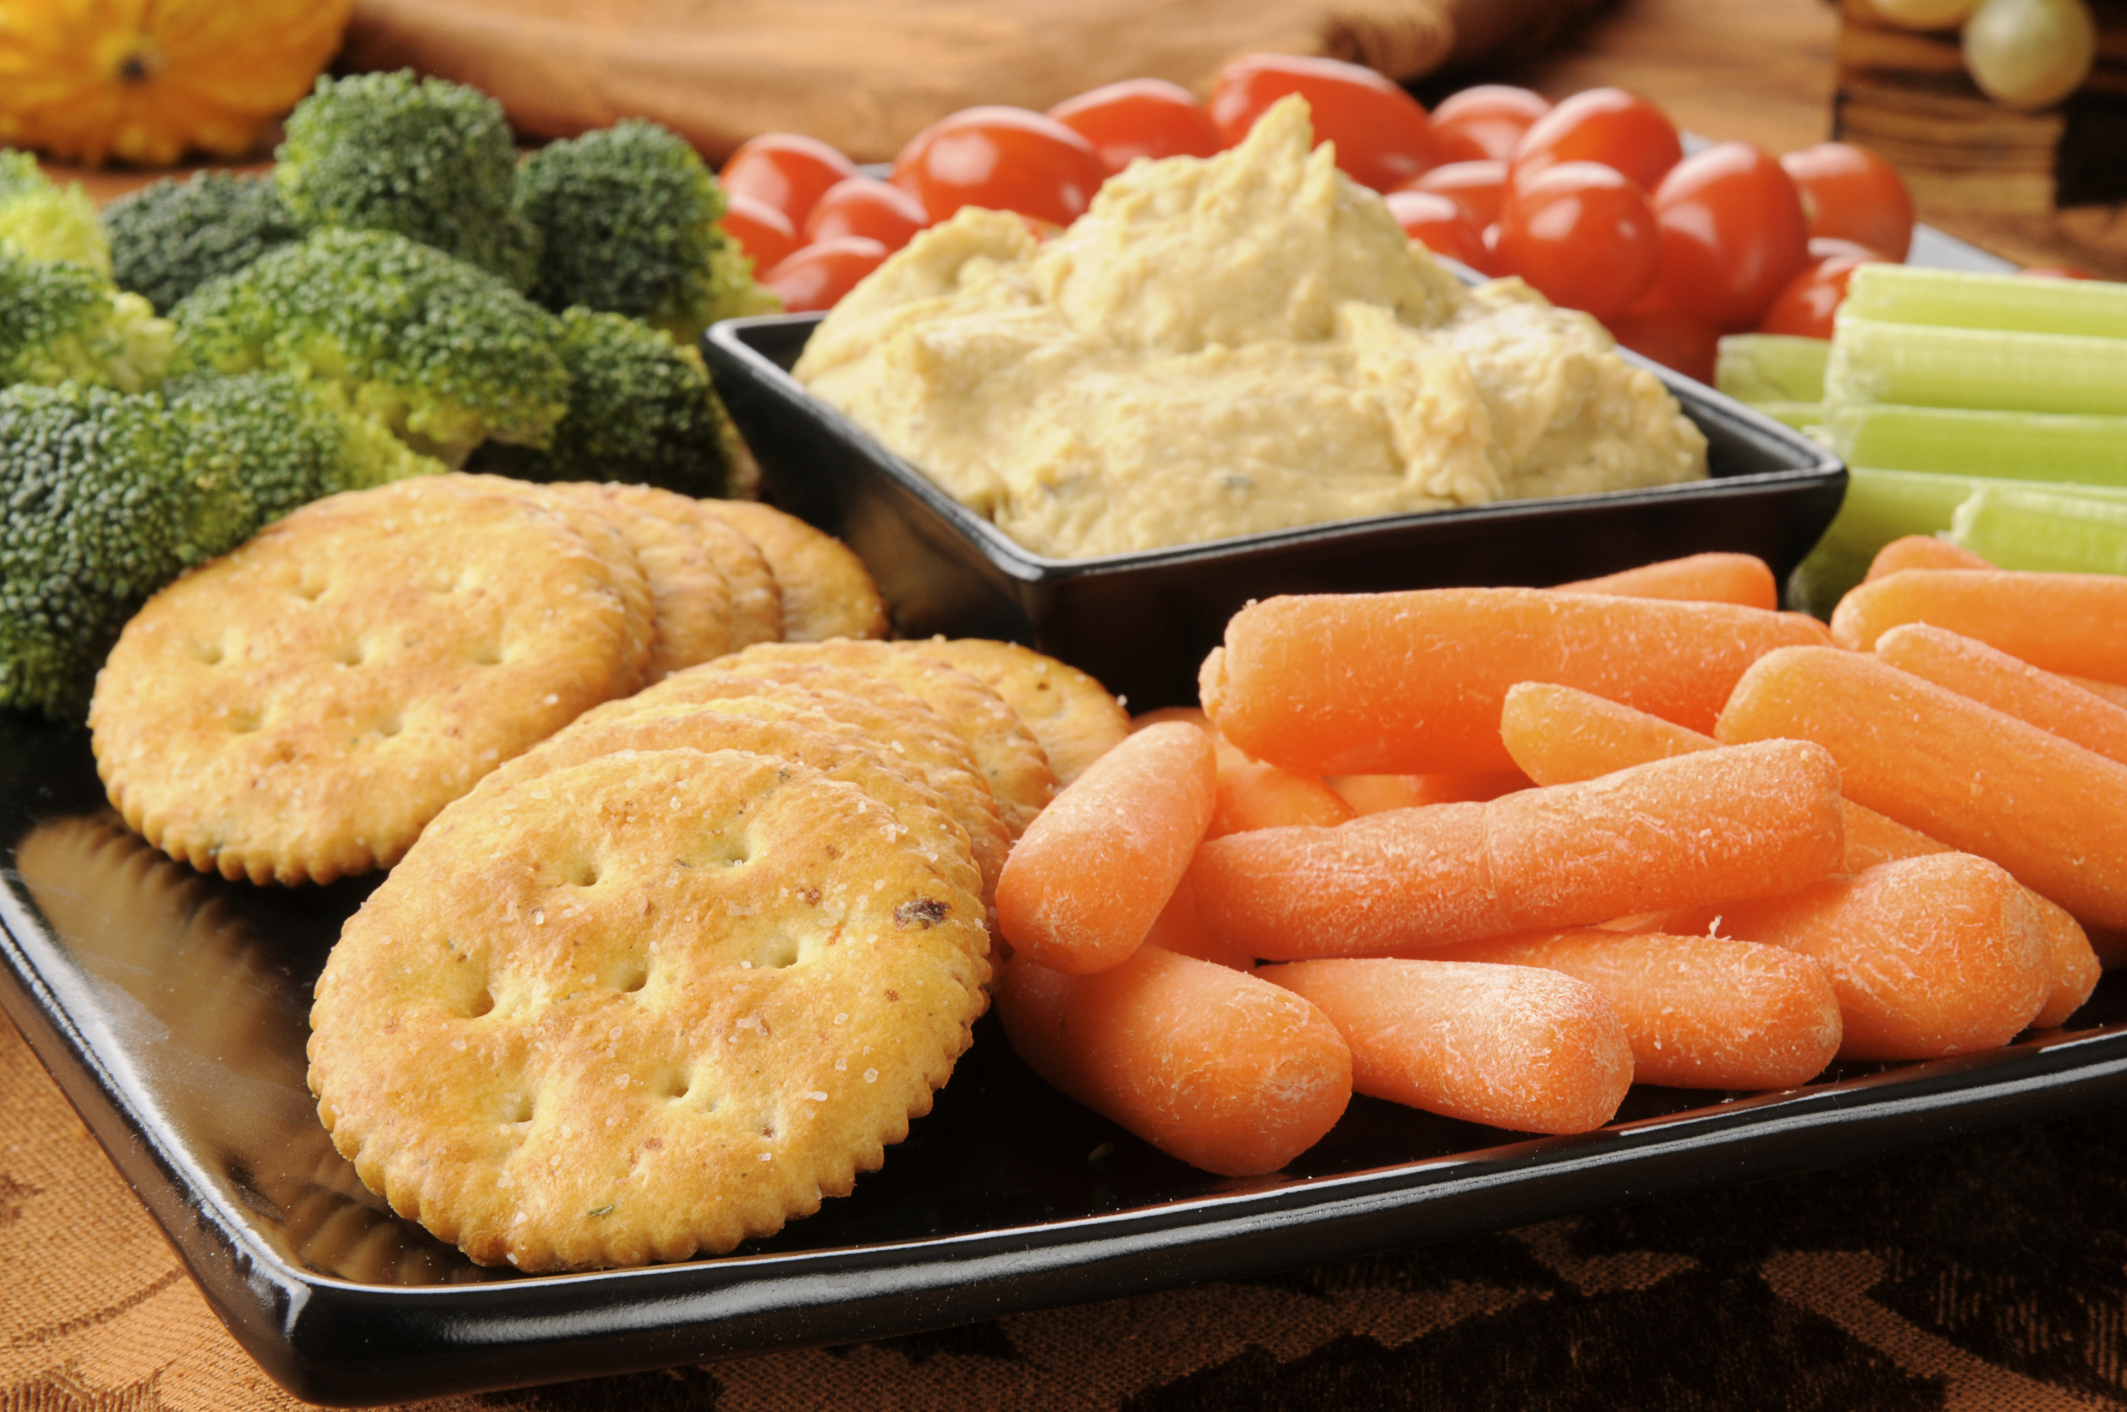 Watch Healthy Snacks With 100 Calories or Less video